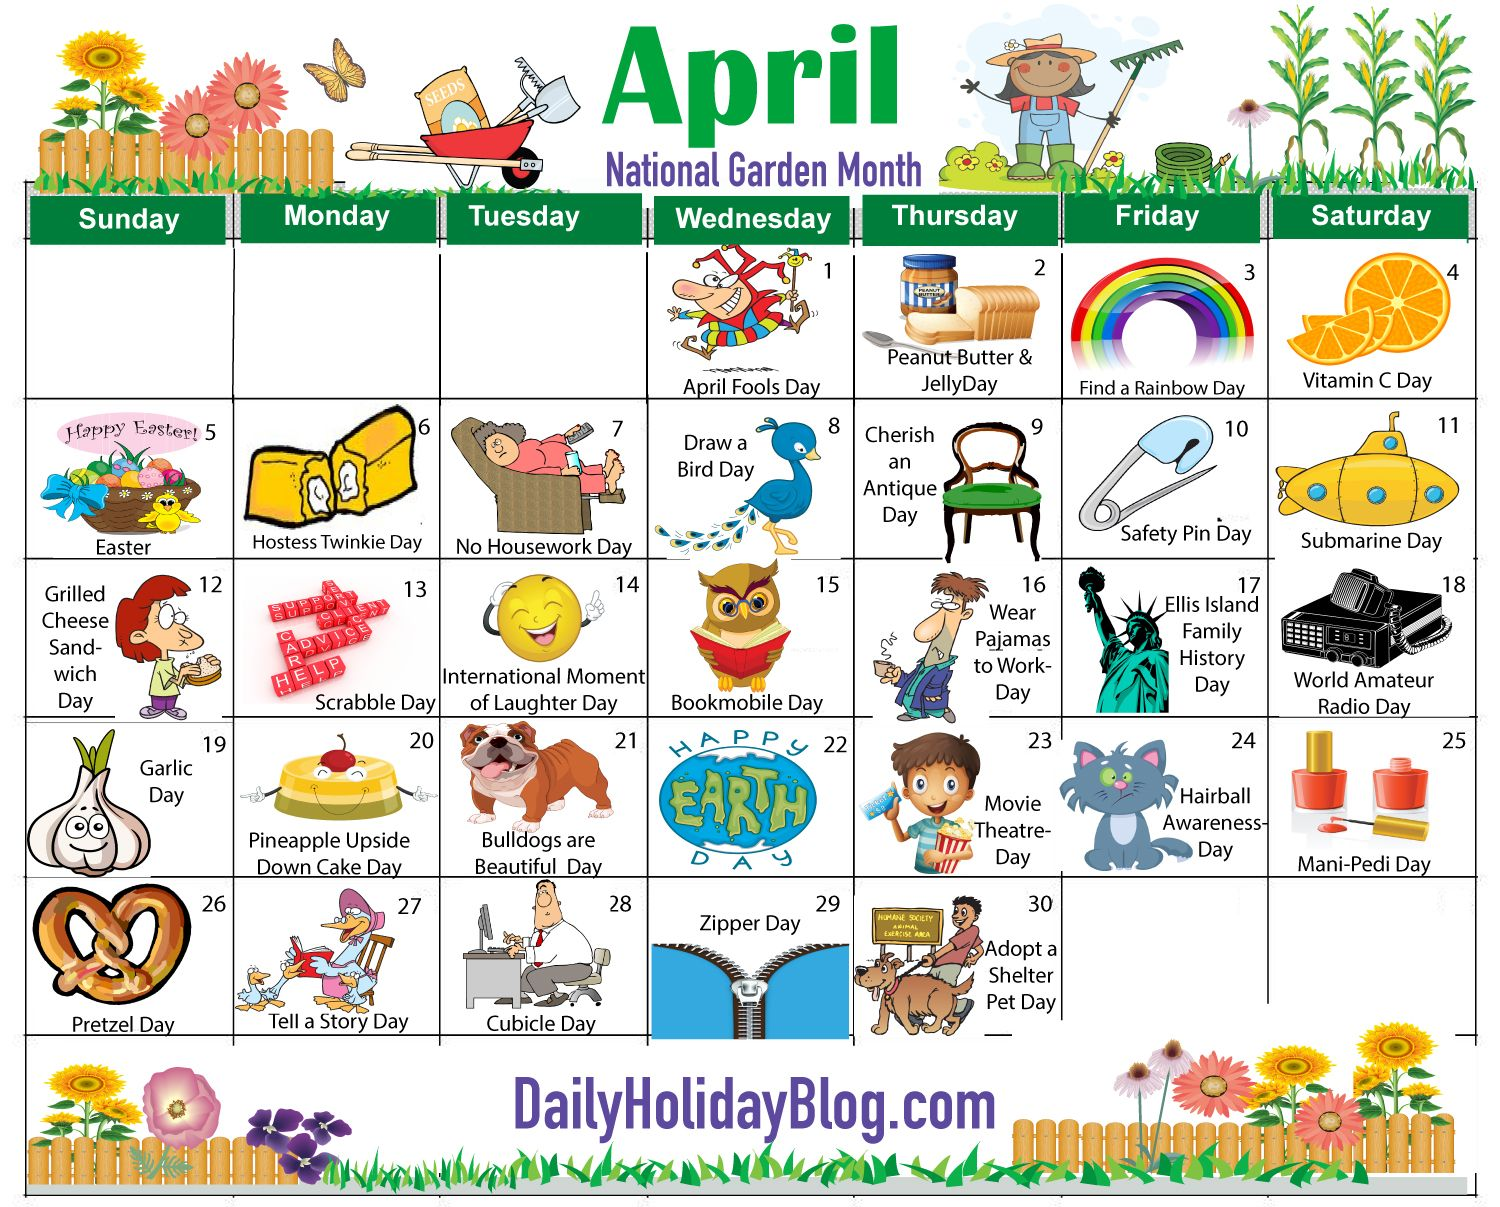 Calendar Ideas For April : On this site every month you can download or print out